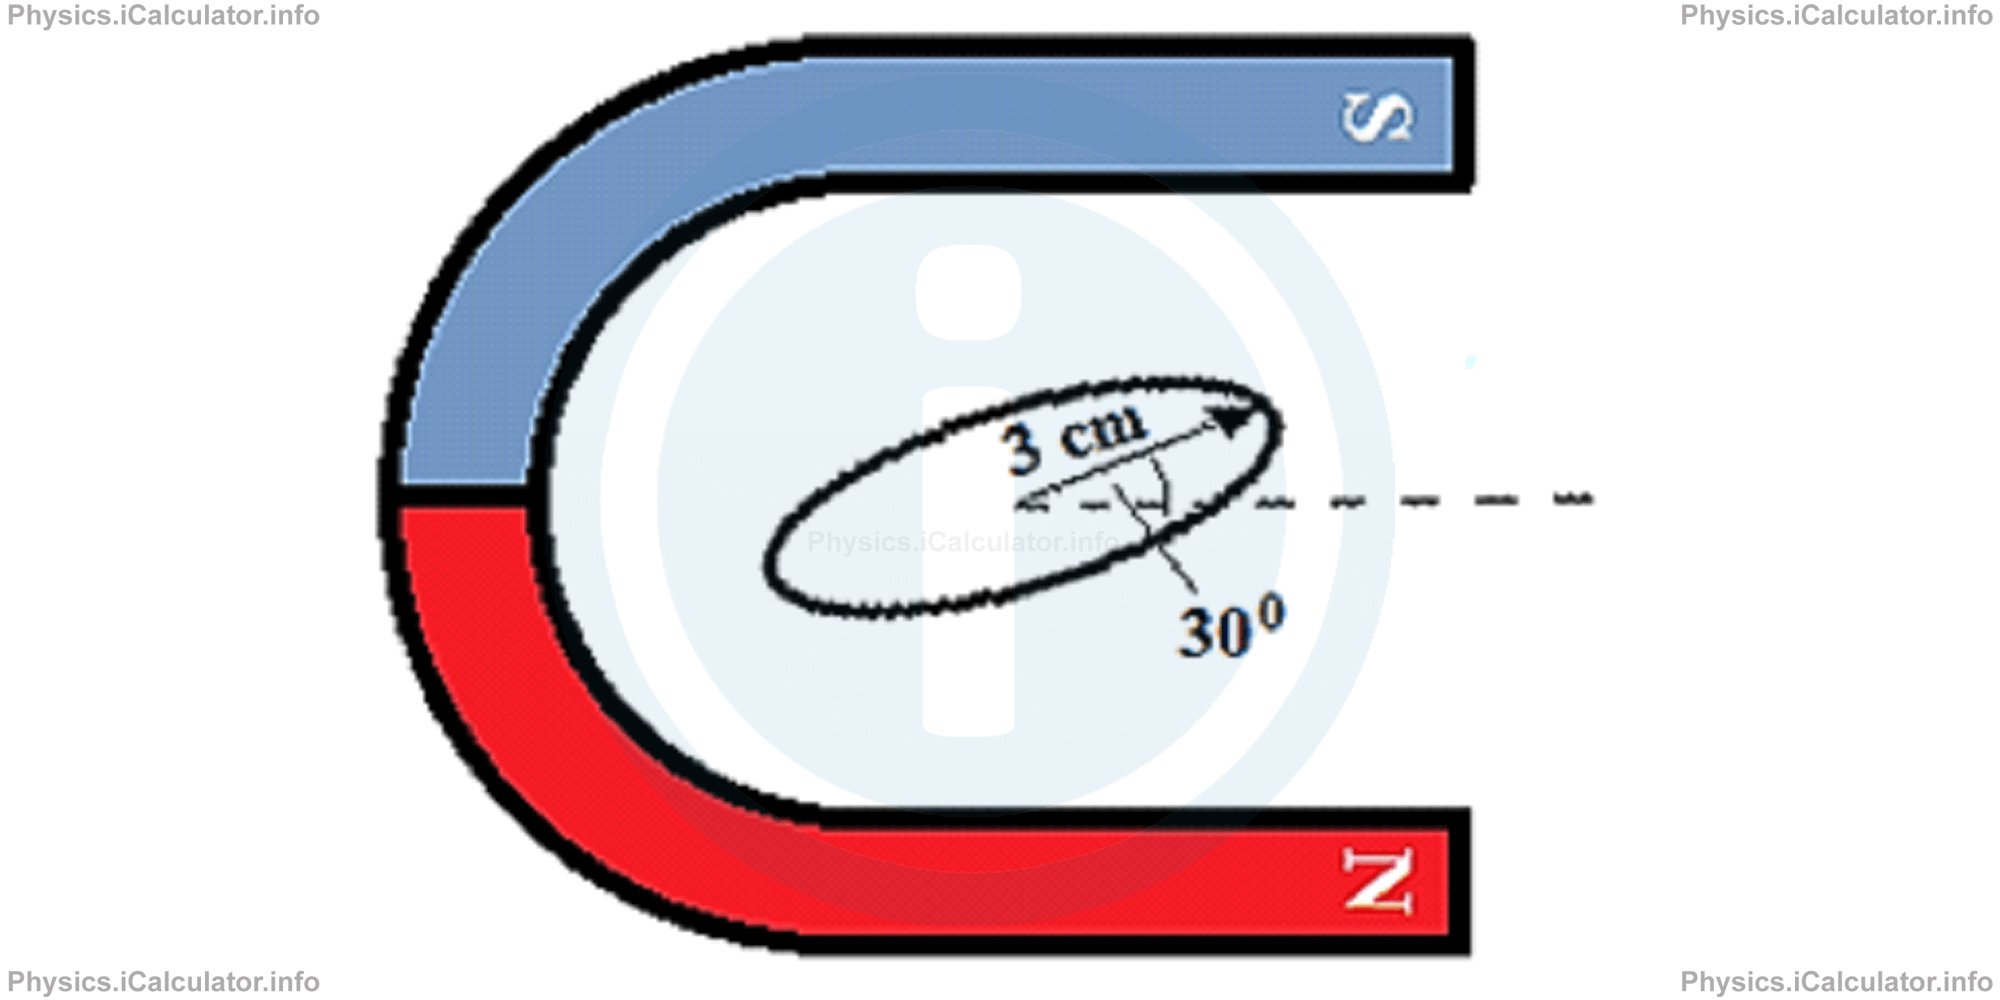 Physics Tutorials: This image provides visual information for the physics tutorial Faraday's Law of Induction